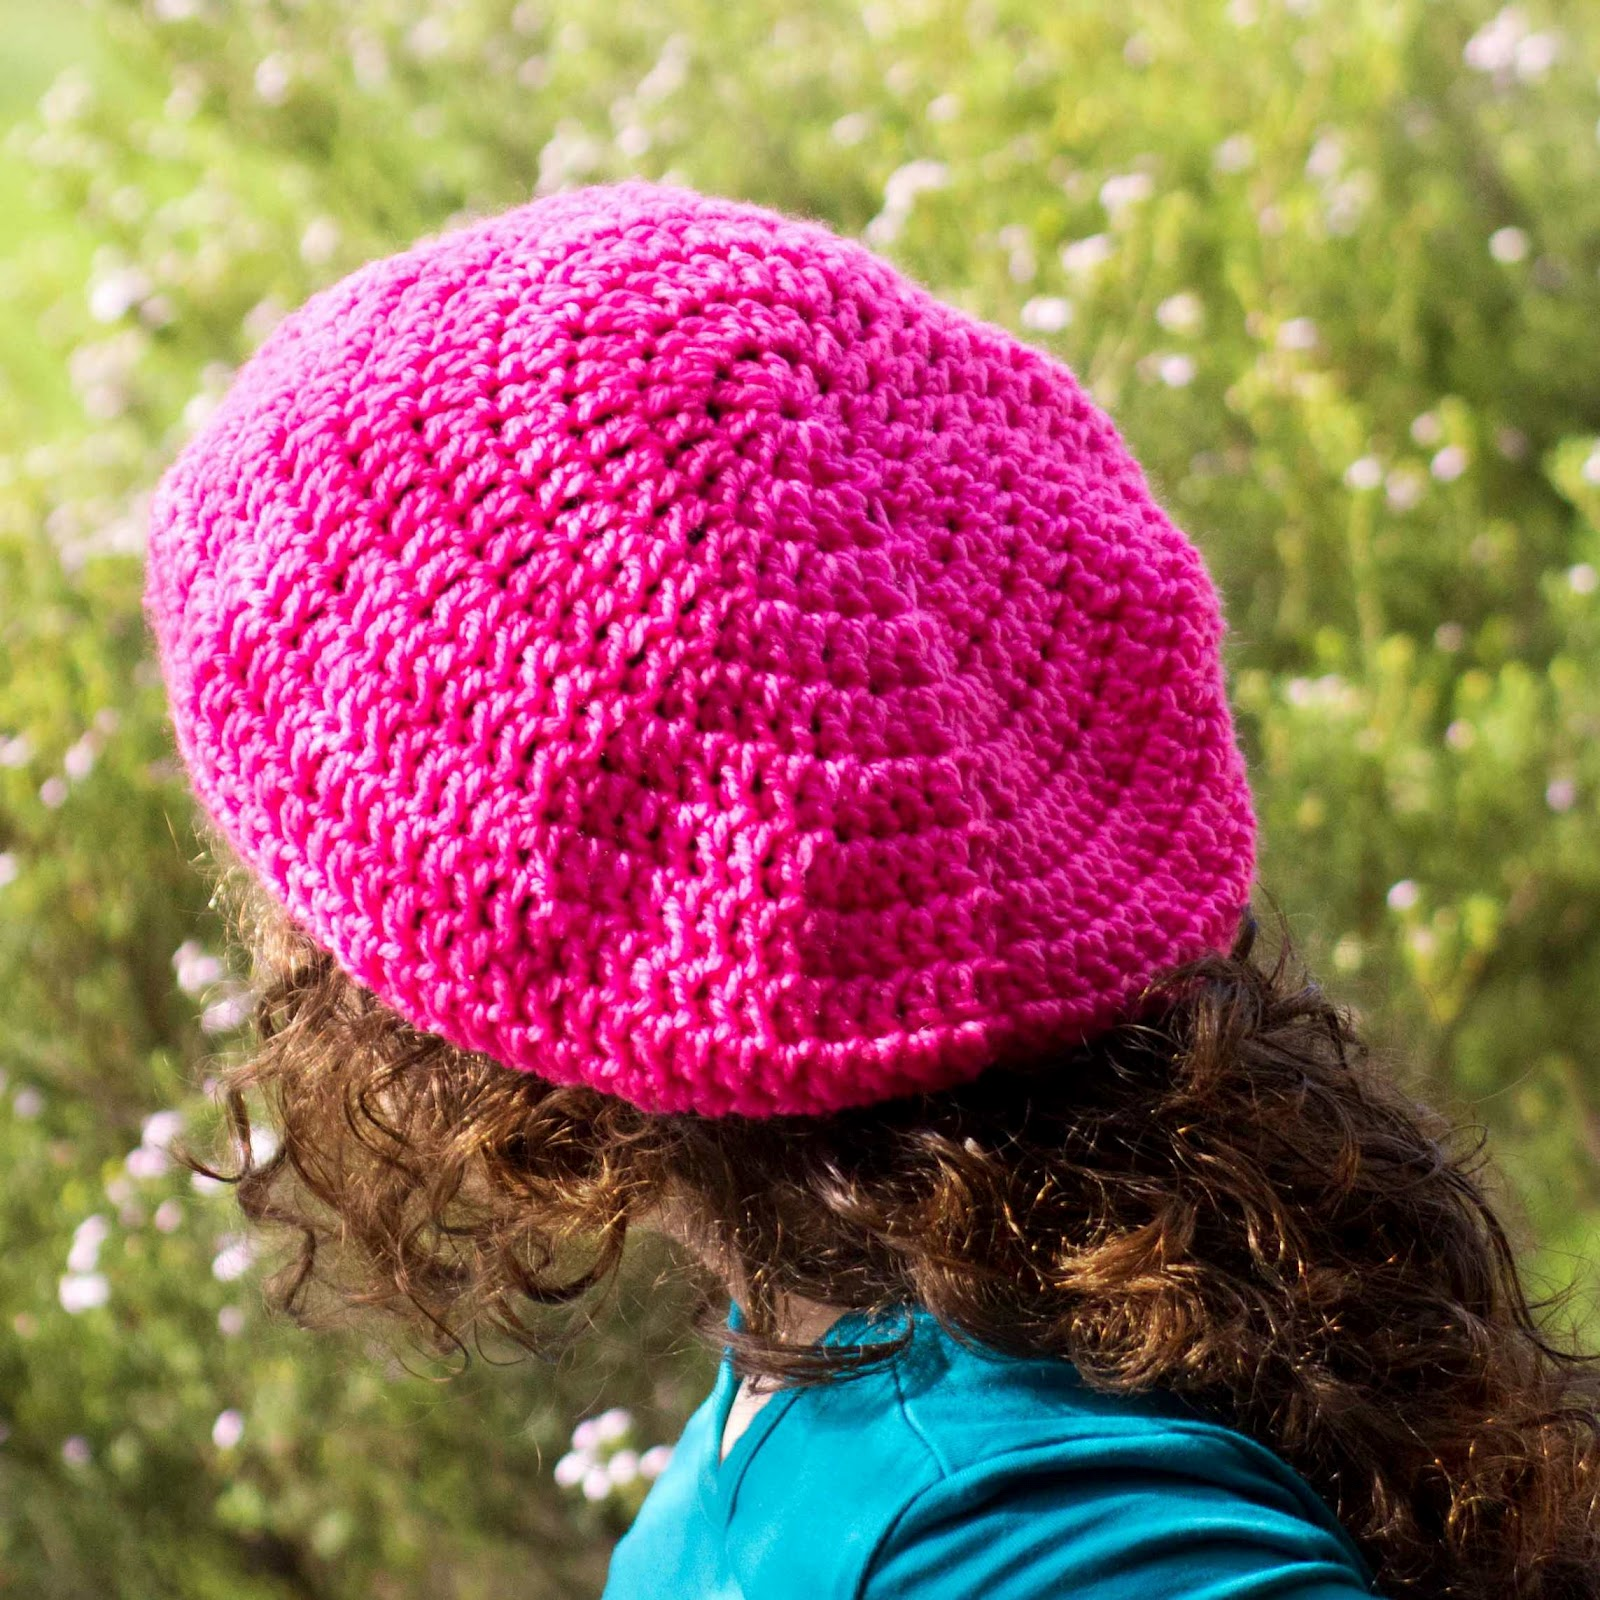 Crochet Basic Beanie Hat Pattern : Hopeful Honey Craft, Crochet, Create: Back to Basics ...